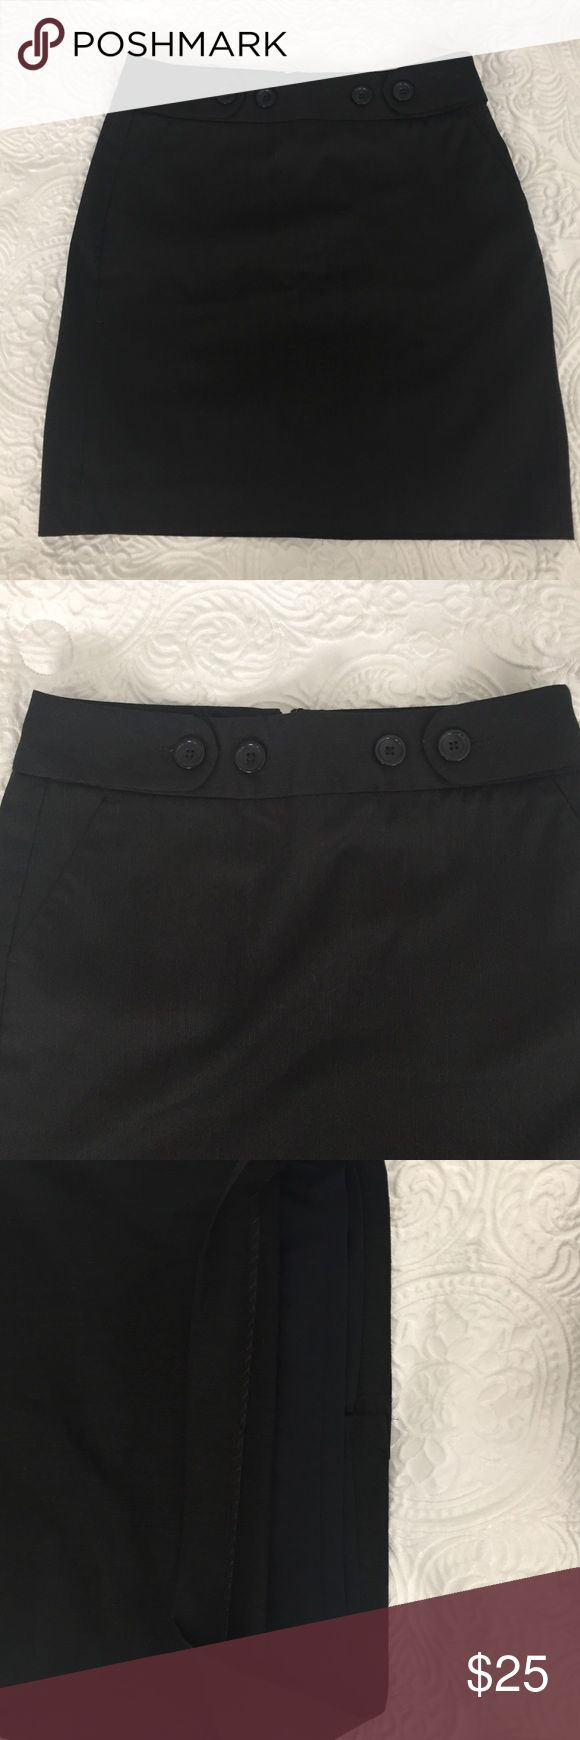 Banana republic petite pencil skirt Size 2 petite. Black lined pencil skirt with four buttons at the top. ( shell 70% polyester28% rayon 2% spandex, lining 95% polyester 5% spandex) Banana Republic Skirts Pencil